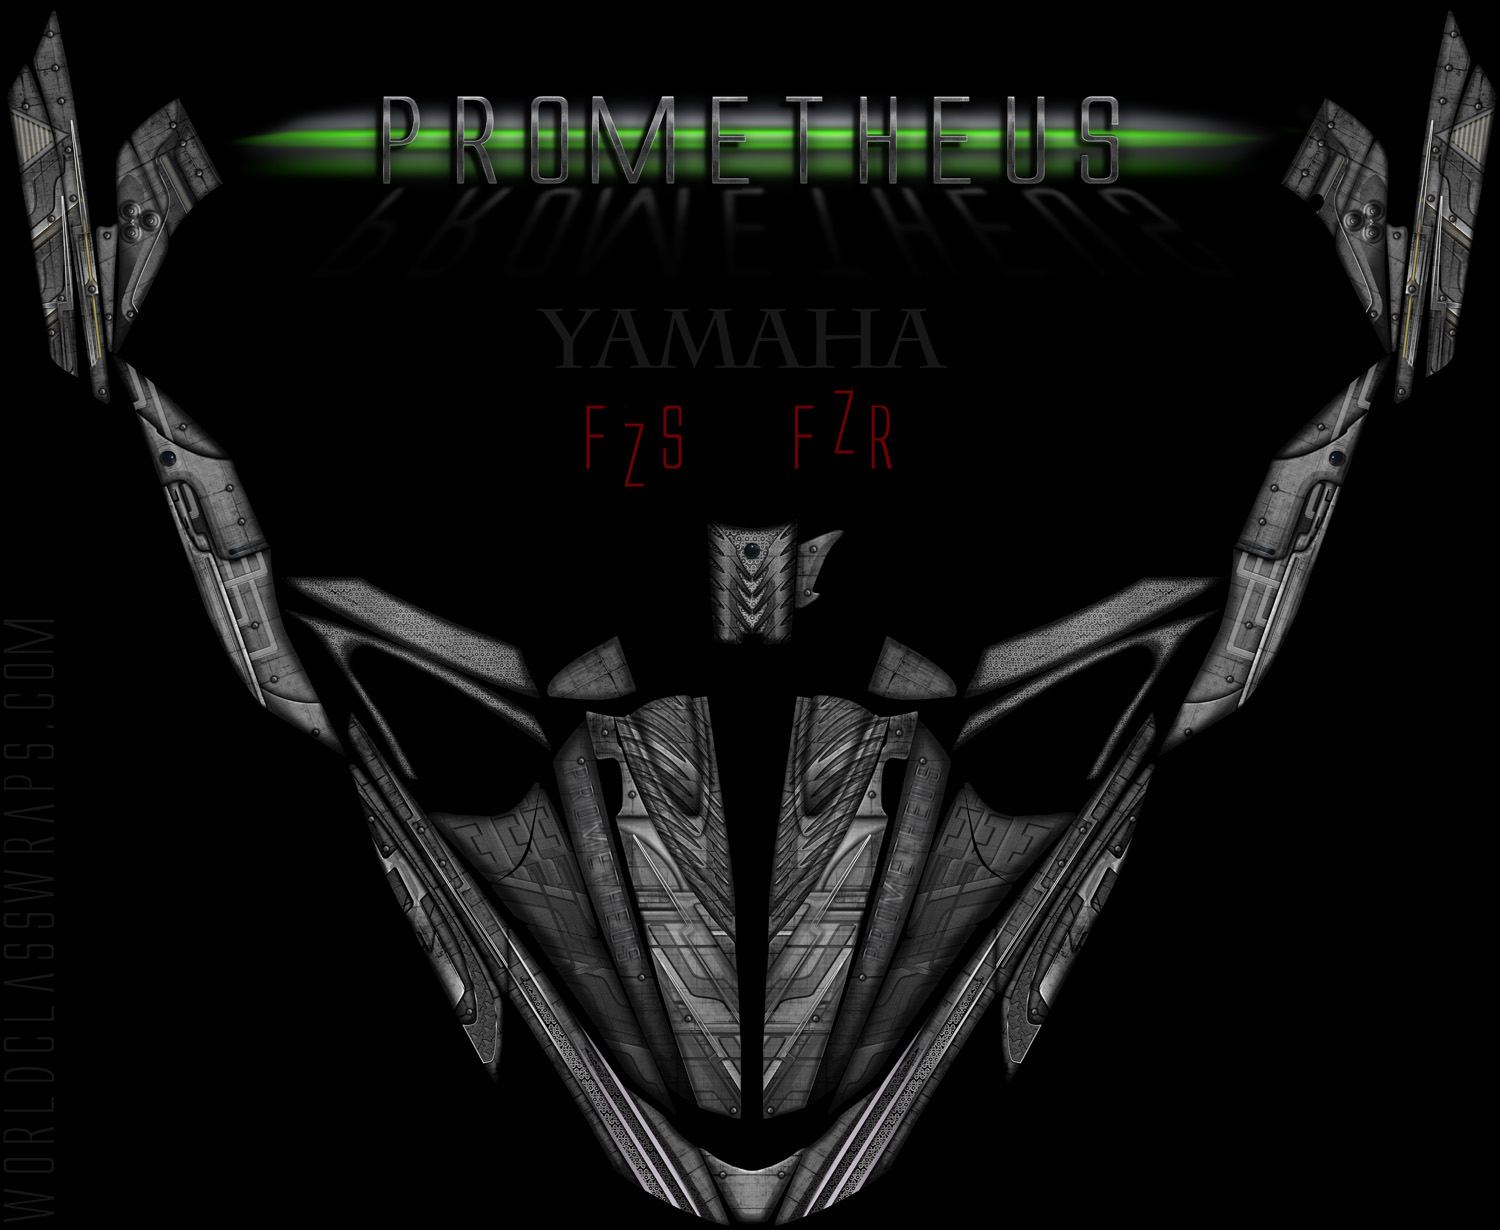 prometheus graphics wrap yamaha fzr fzs wave runner